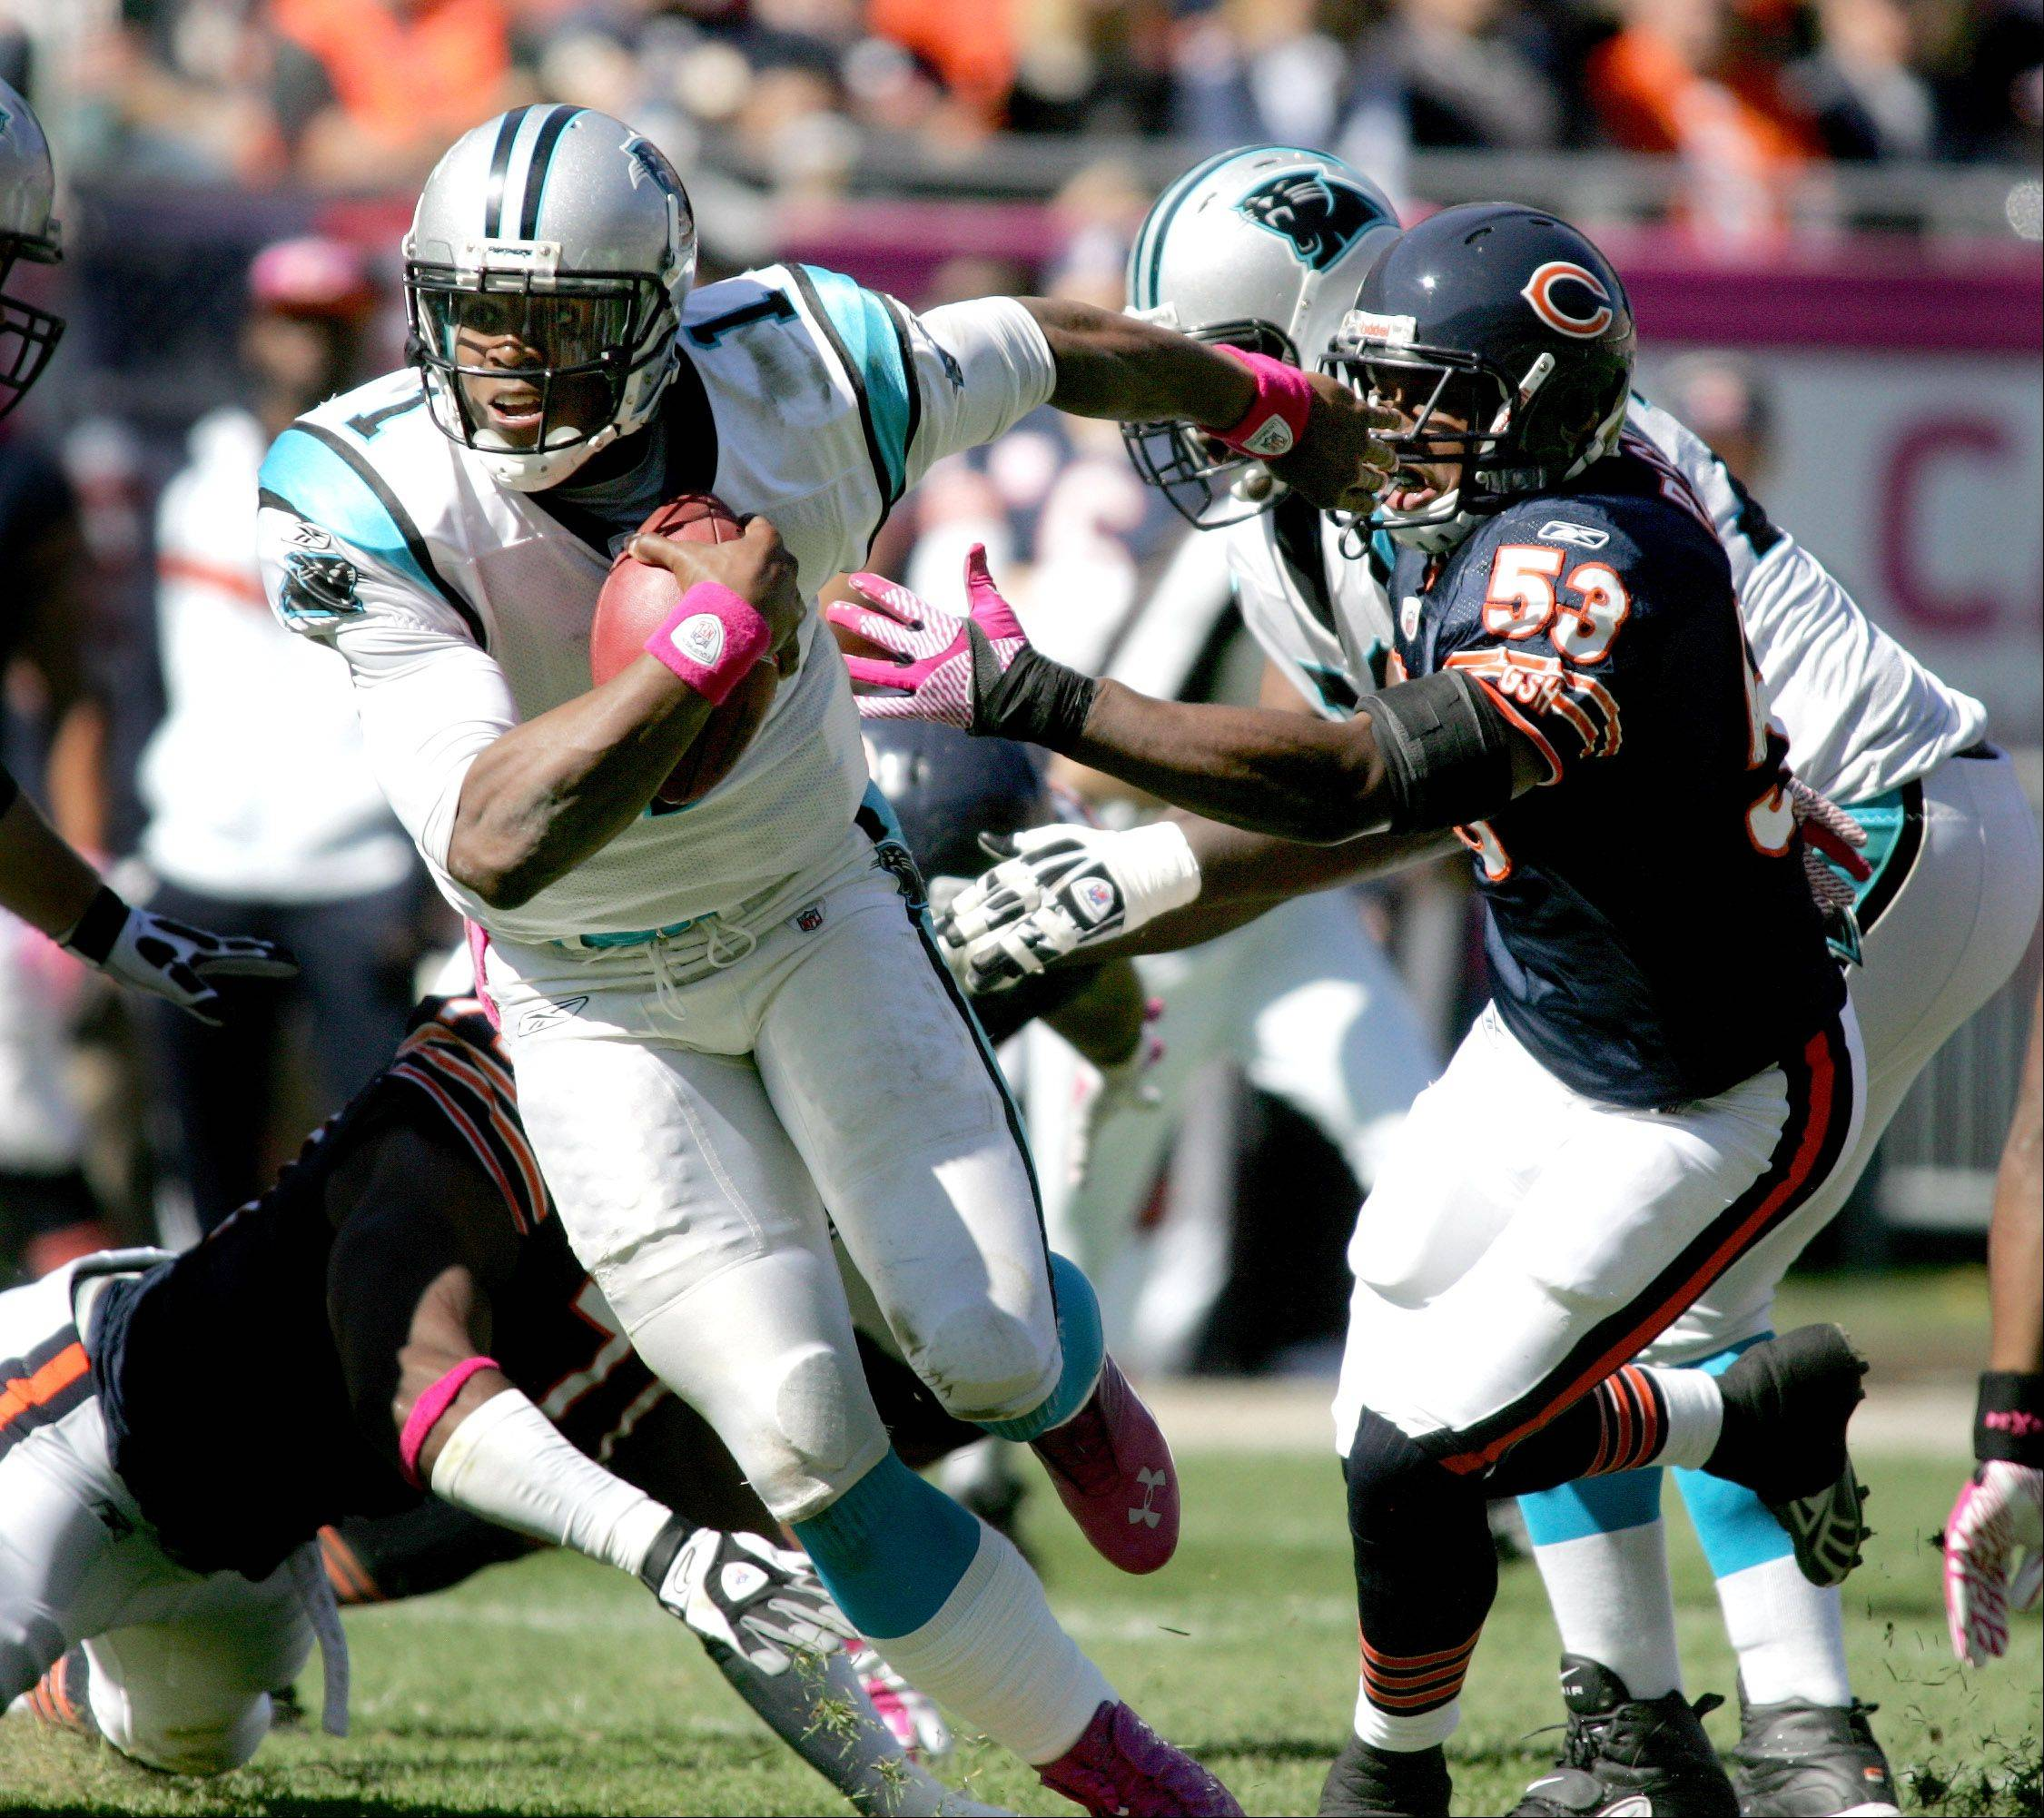 Last season Carolina Panthers quarterback Cam Newton set several rookie records. This season, however, his maturity has been called into question as his team has struggled to a 1-5 record.